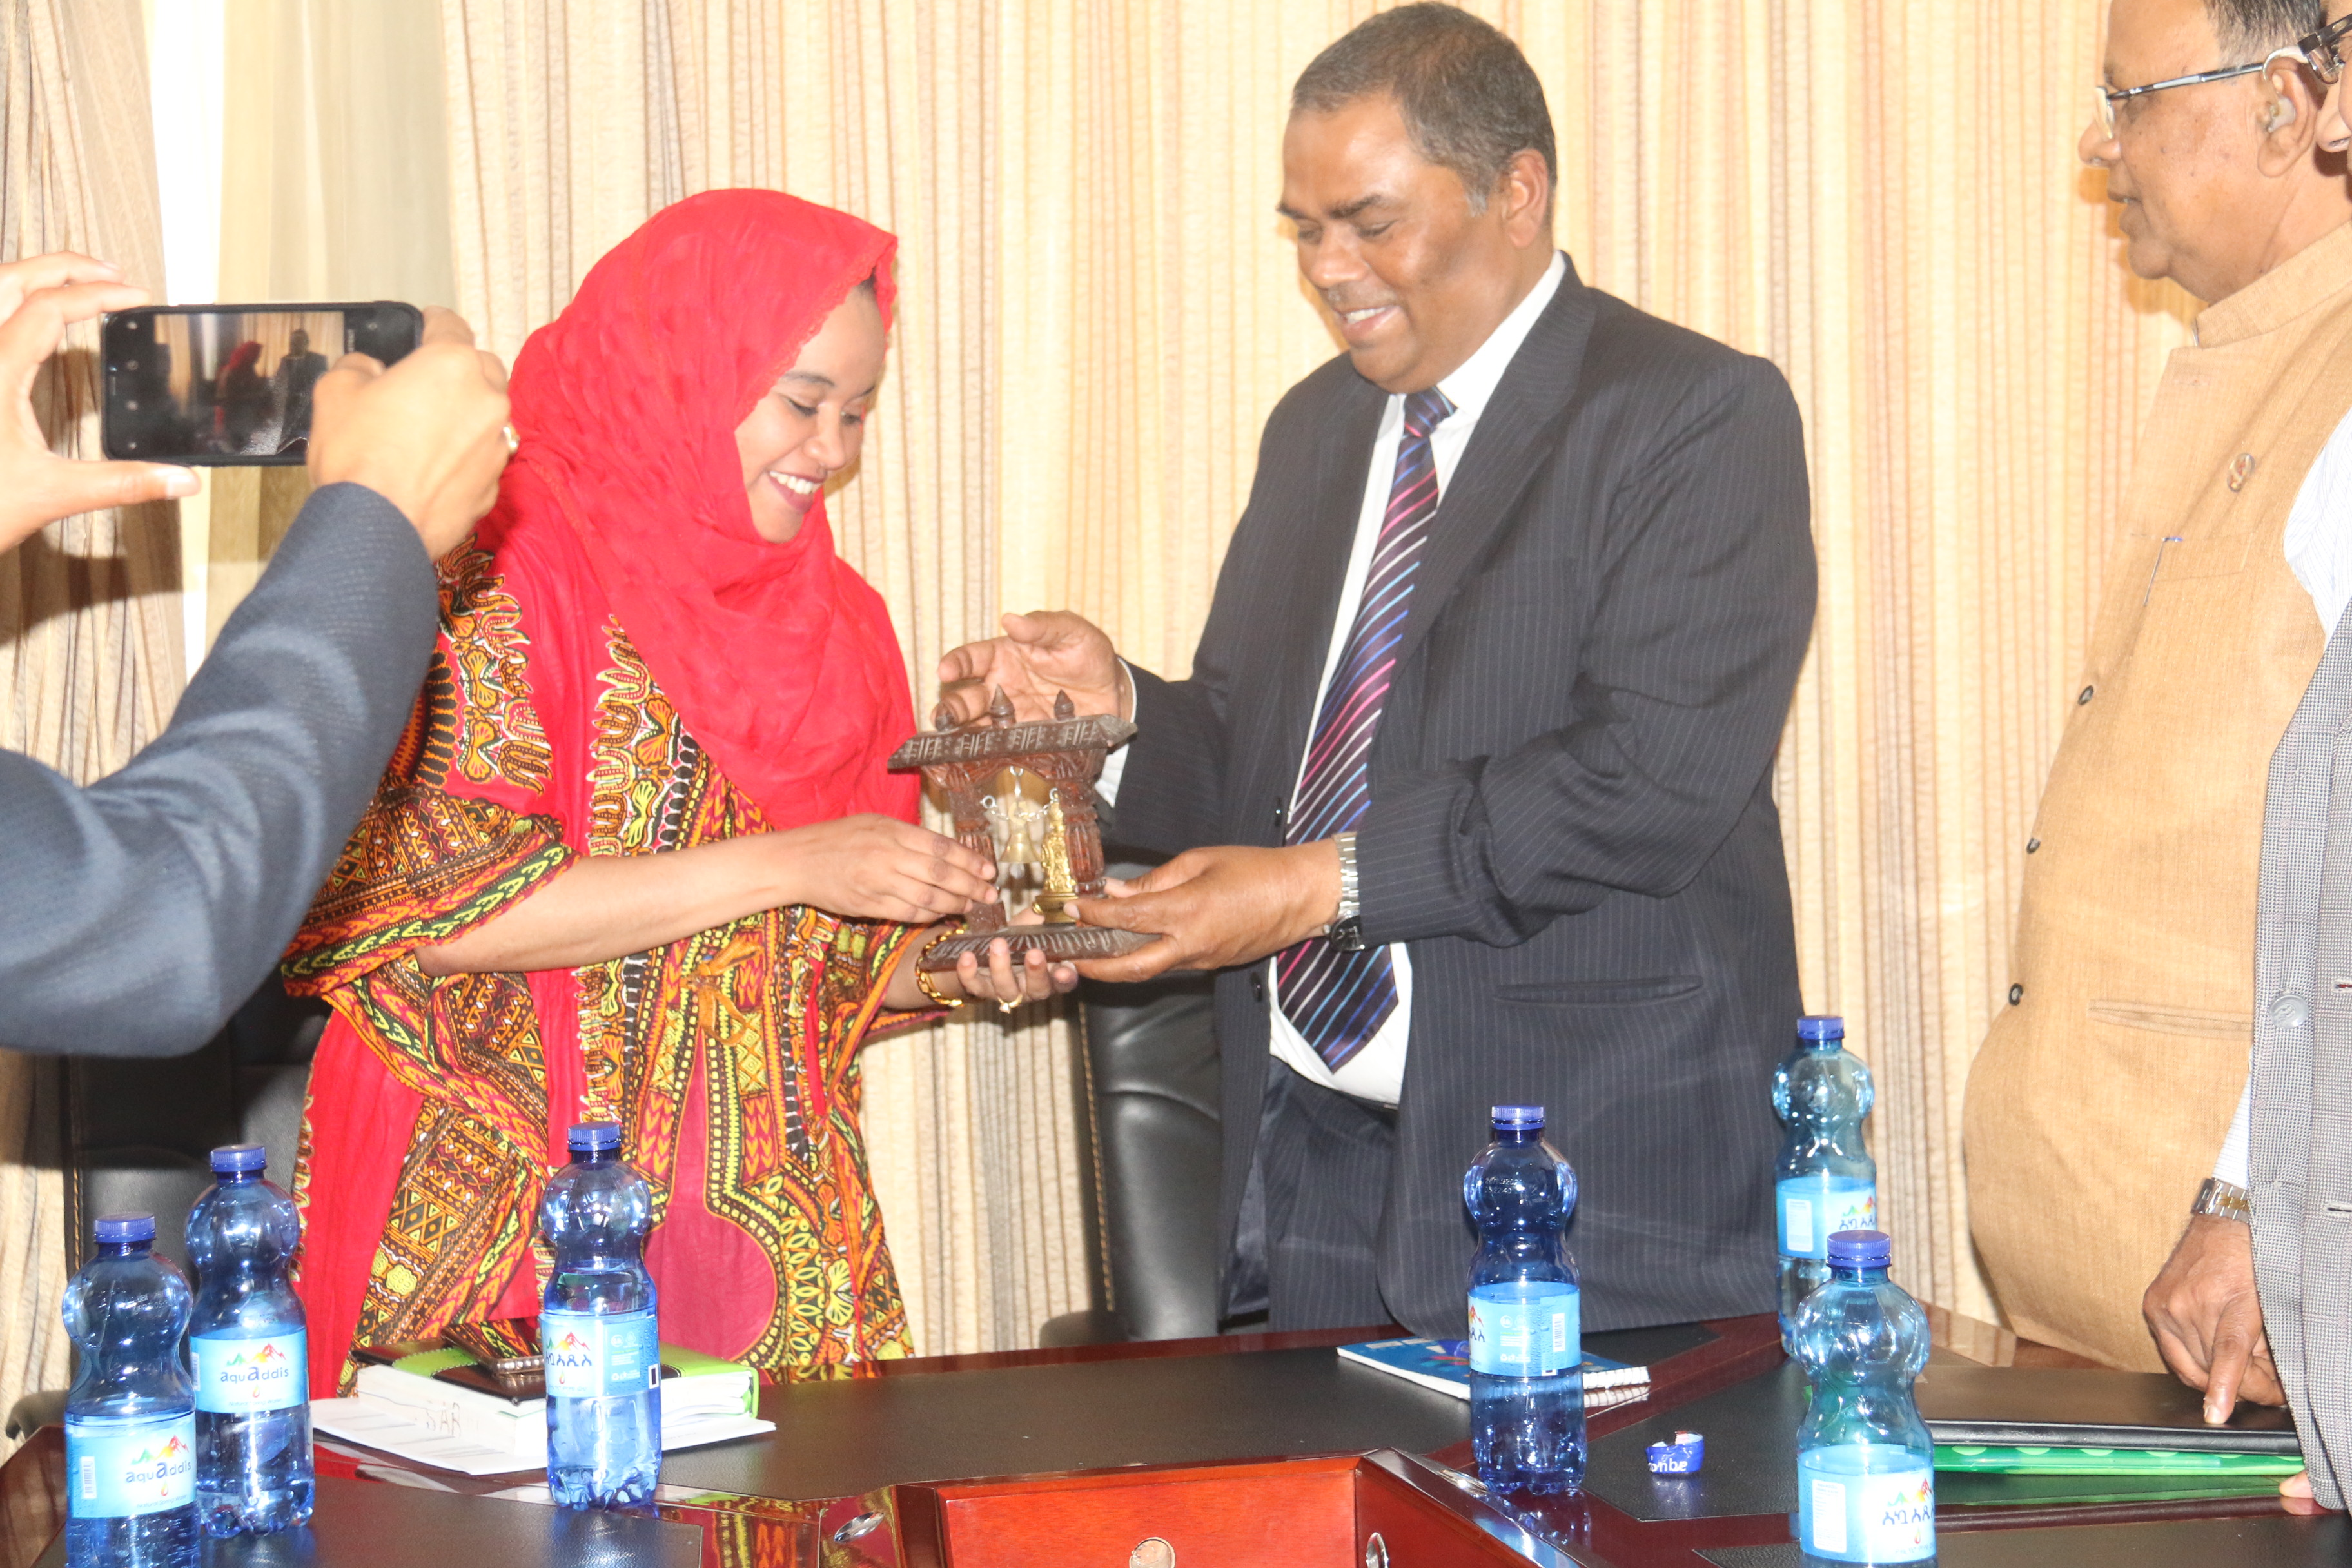 L to R:H.E. Dr Seharla Abdulahi, State Minister of Health-Operation and H.E. Mr Upendra Yadav, Deputy Prime Minister and Minister of Health and Population of Nepal